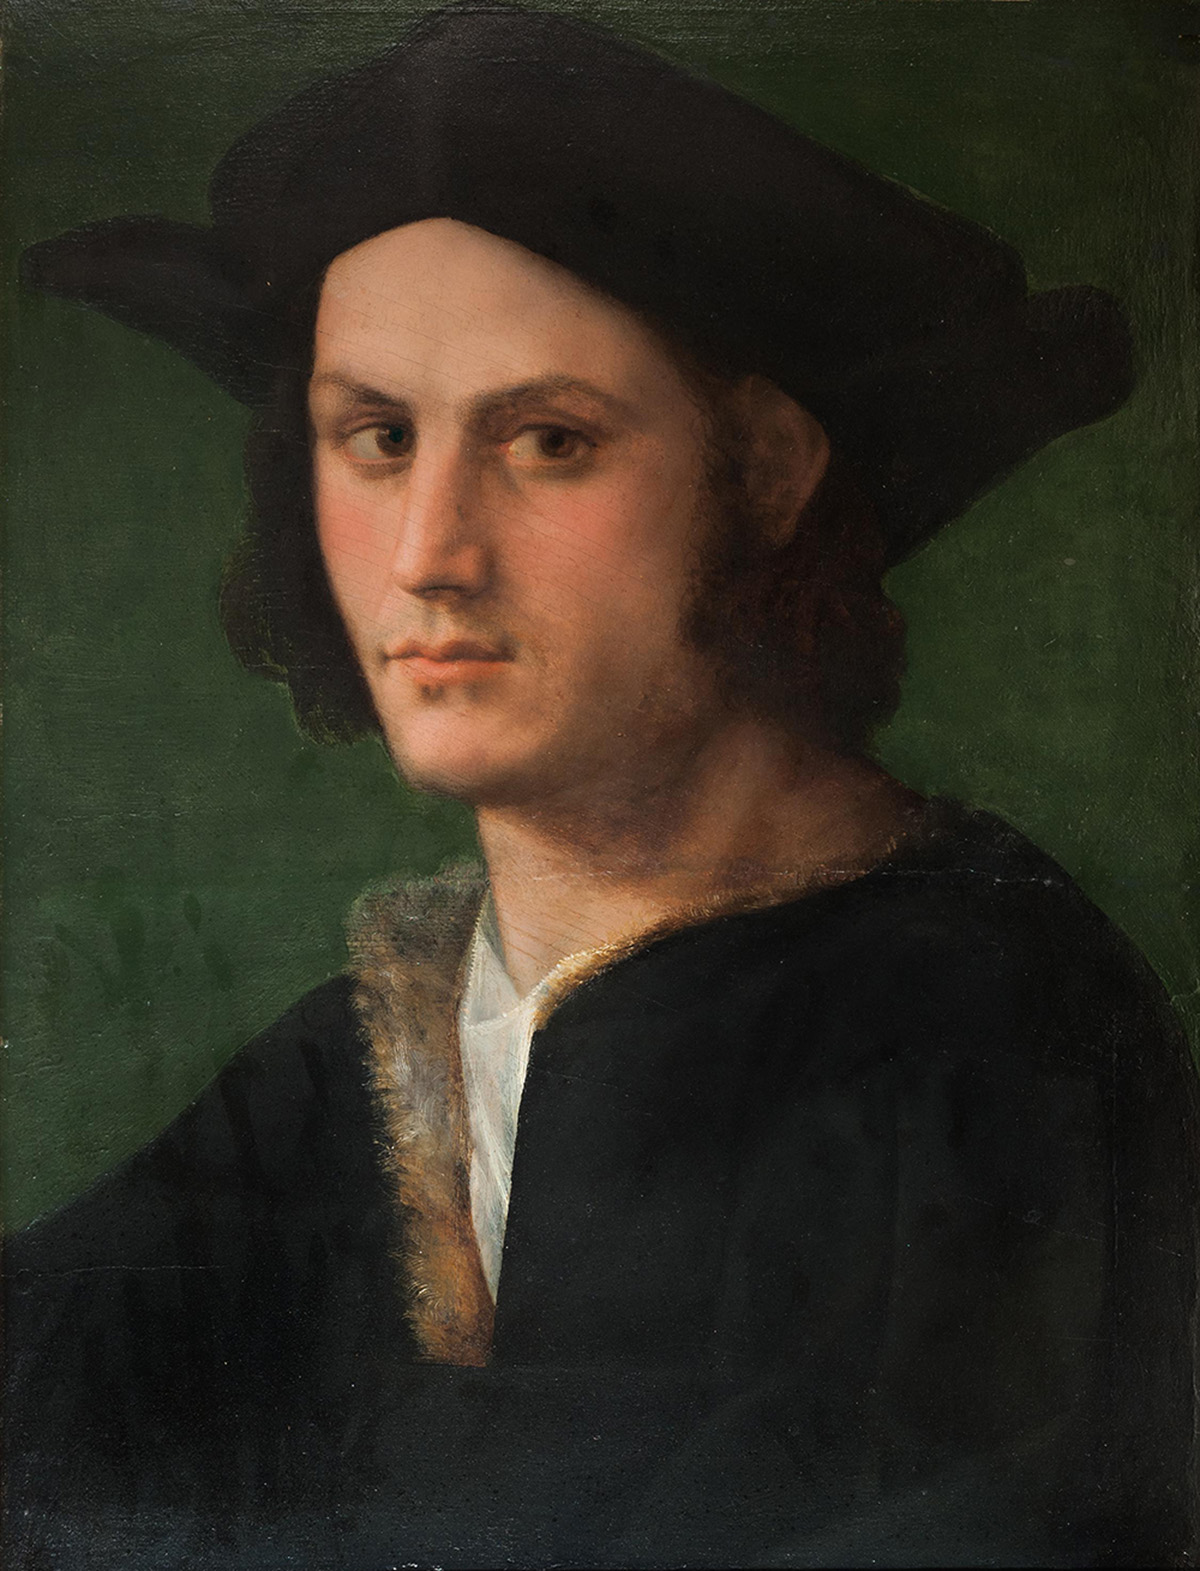 Portrait of a young man wearing hat and looking off to the side.